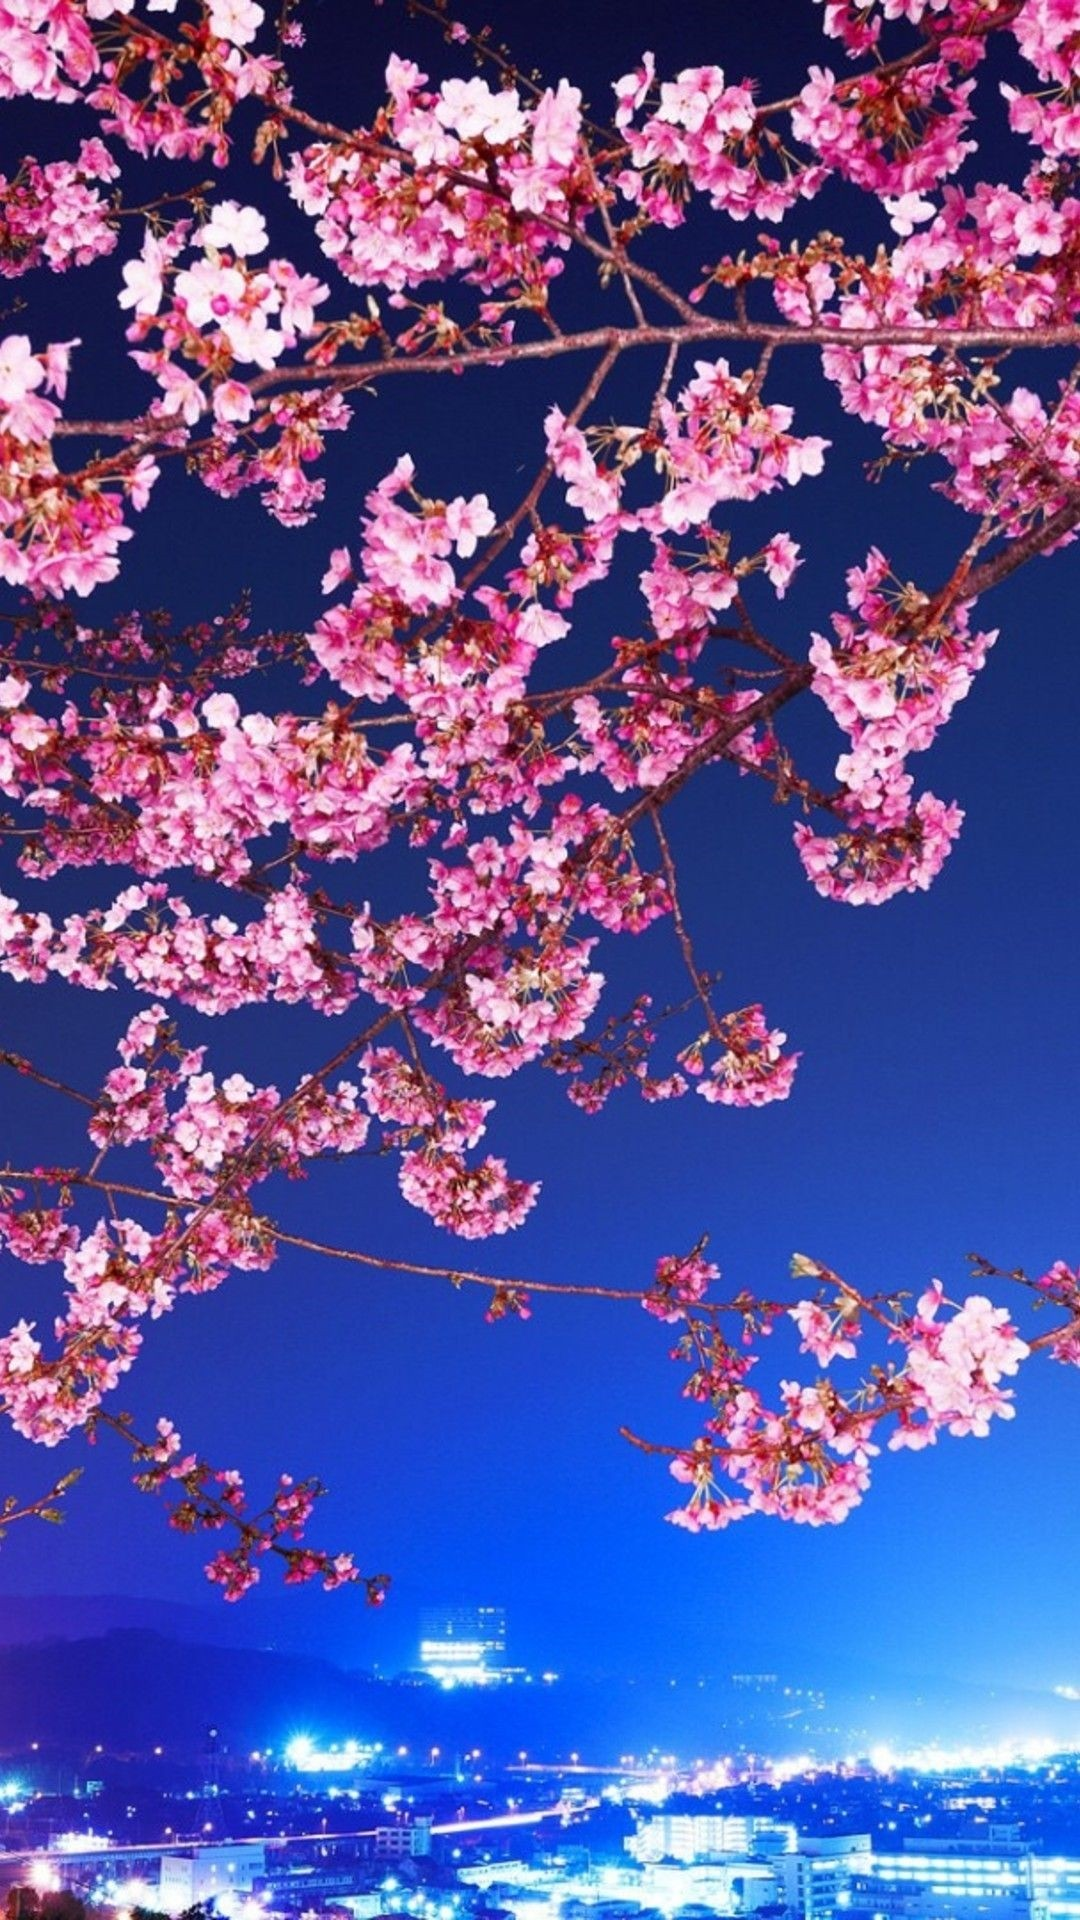 Cherry Blossom iphone wallpaper high quality